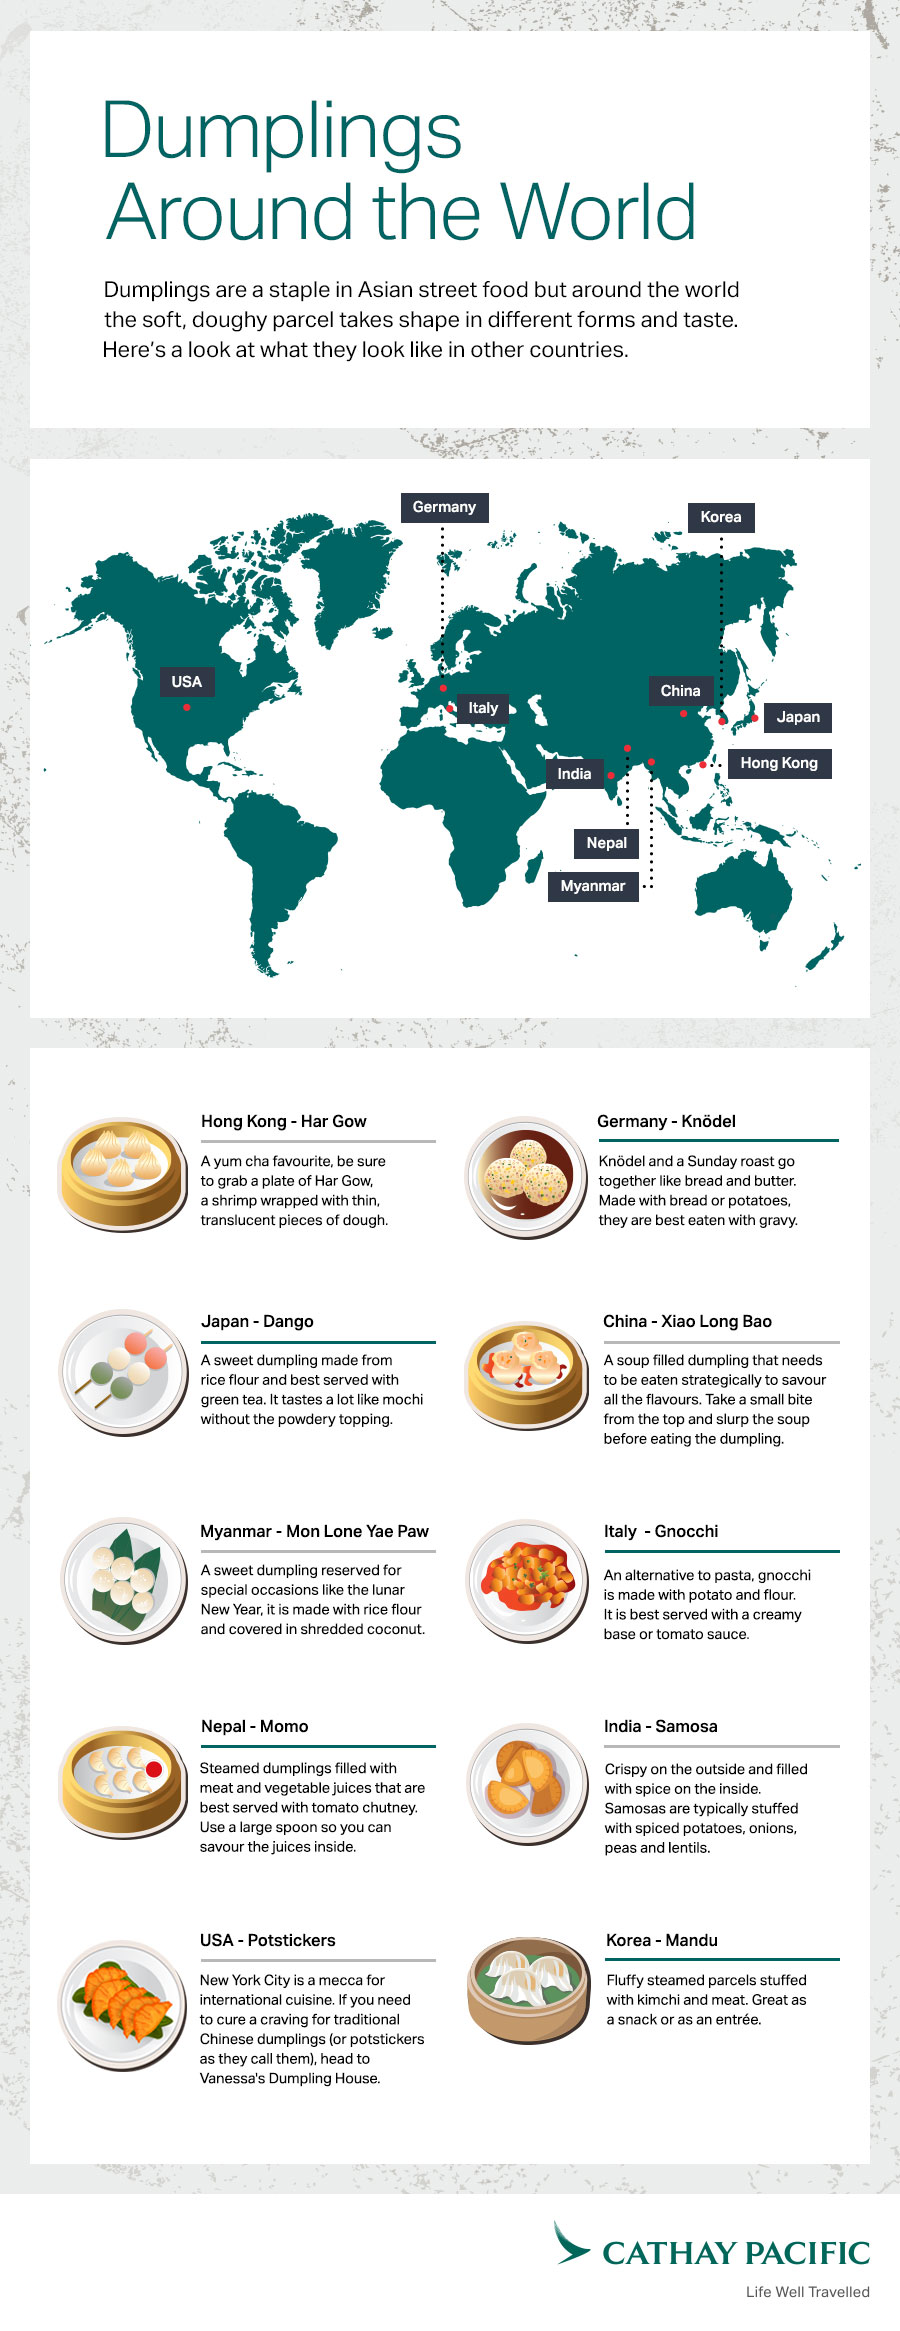 Cathay Pacific_Dumplings Infographic